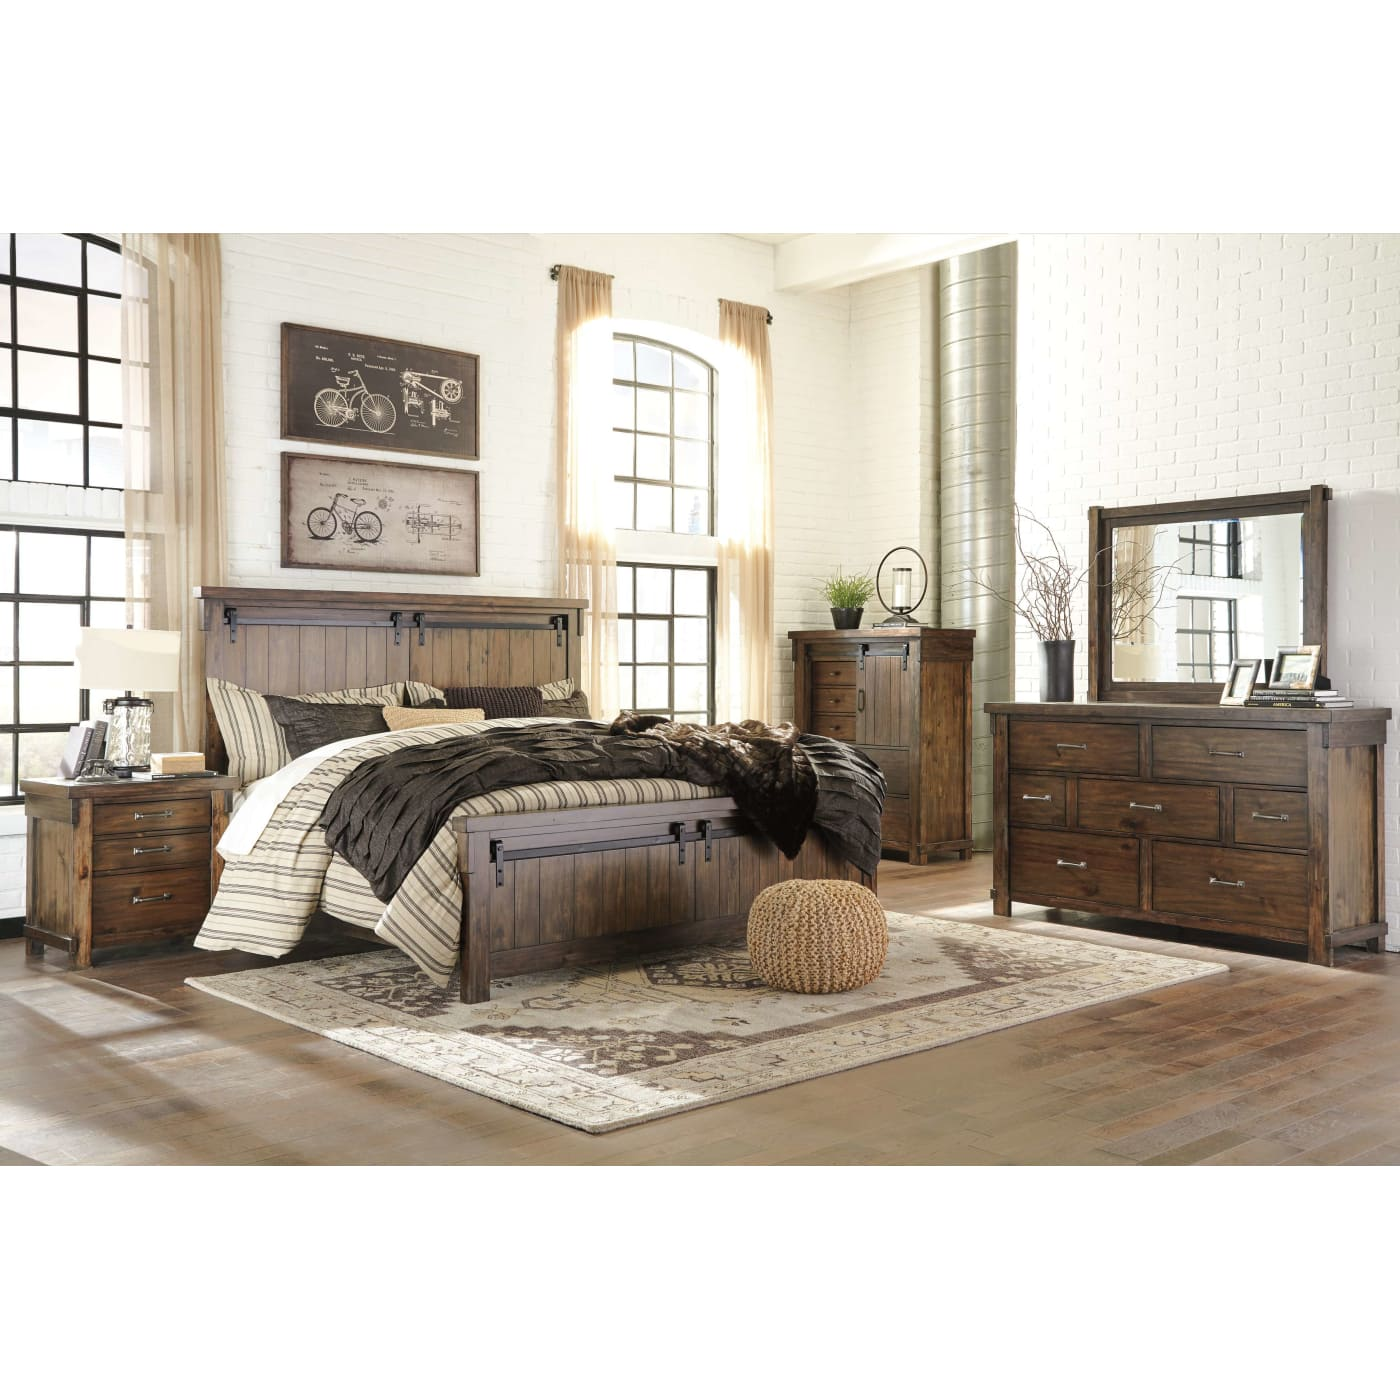 Signature design by ashley lakeleigh brown queen 4 piece - Ashley bedroom furniture reviews ...